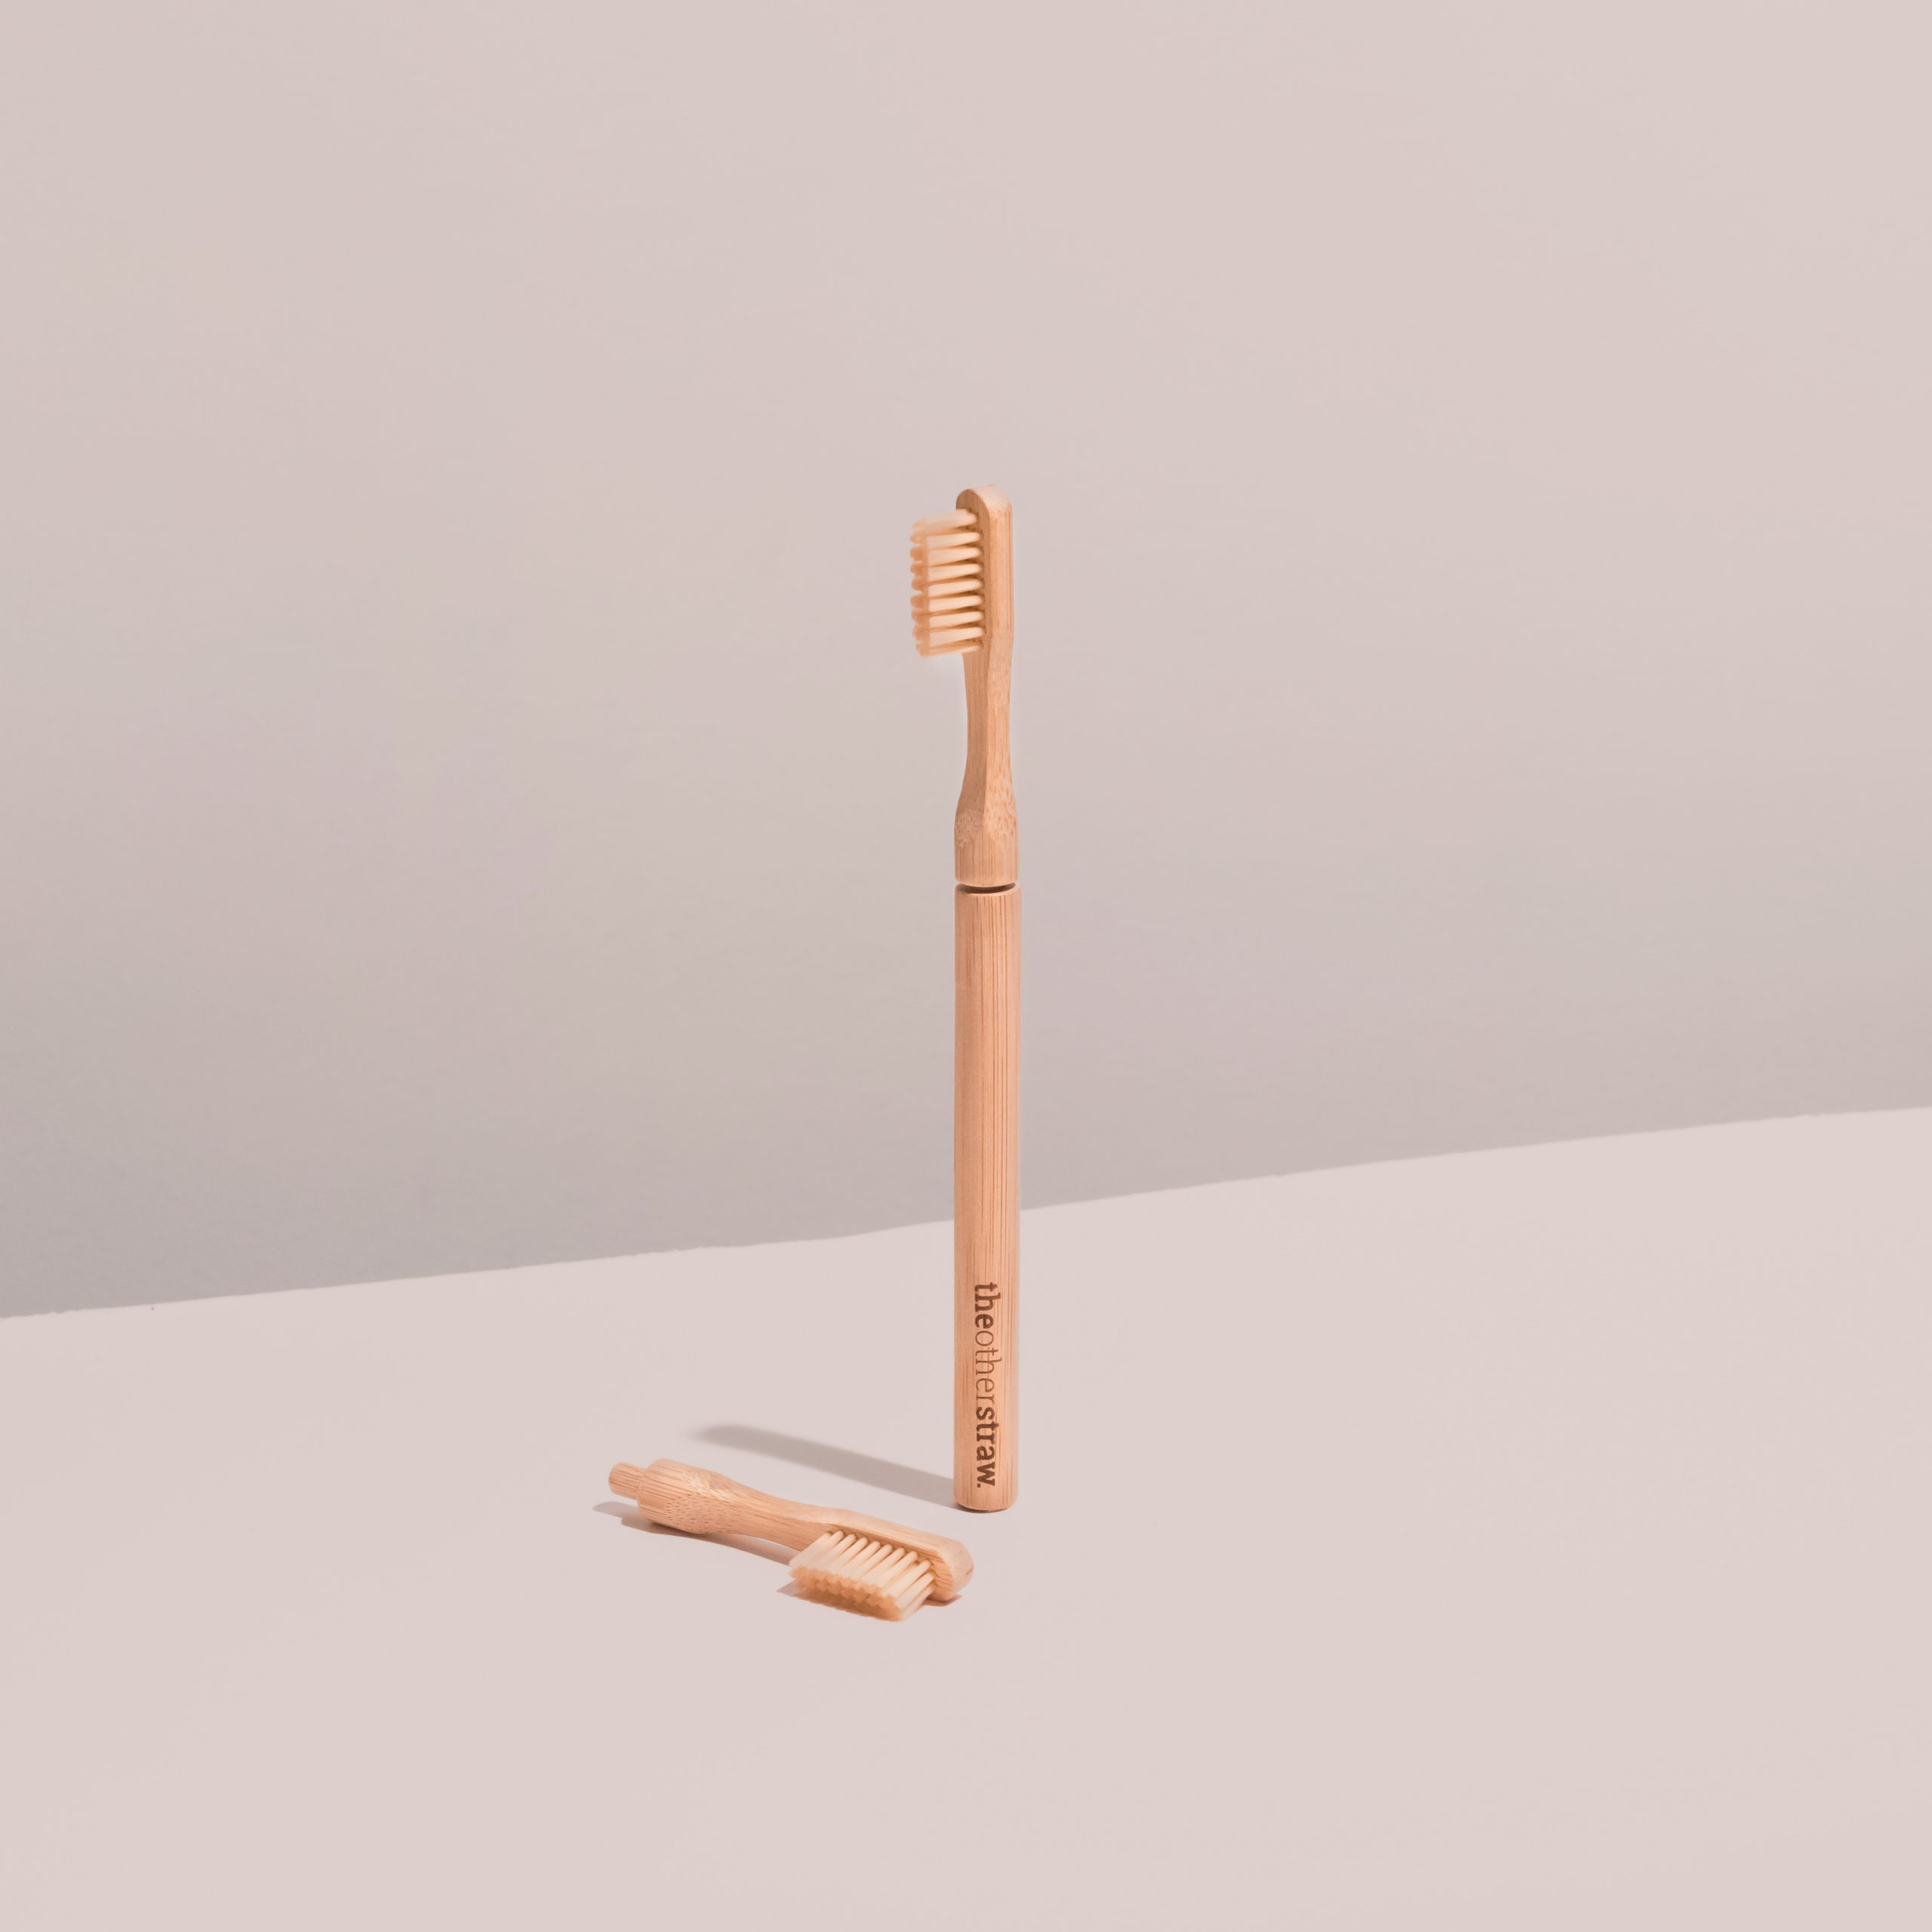 Act Like Its Earth Day Everyday - Bamboo toothbrush